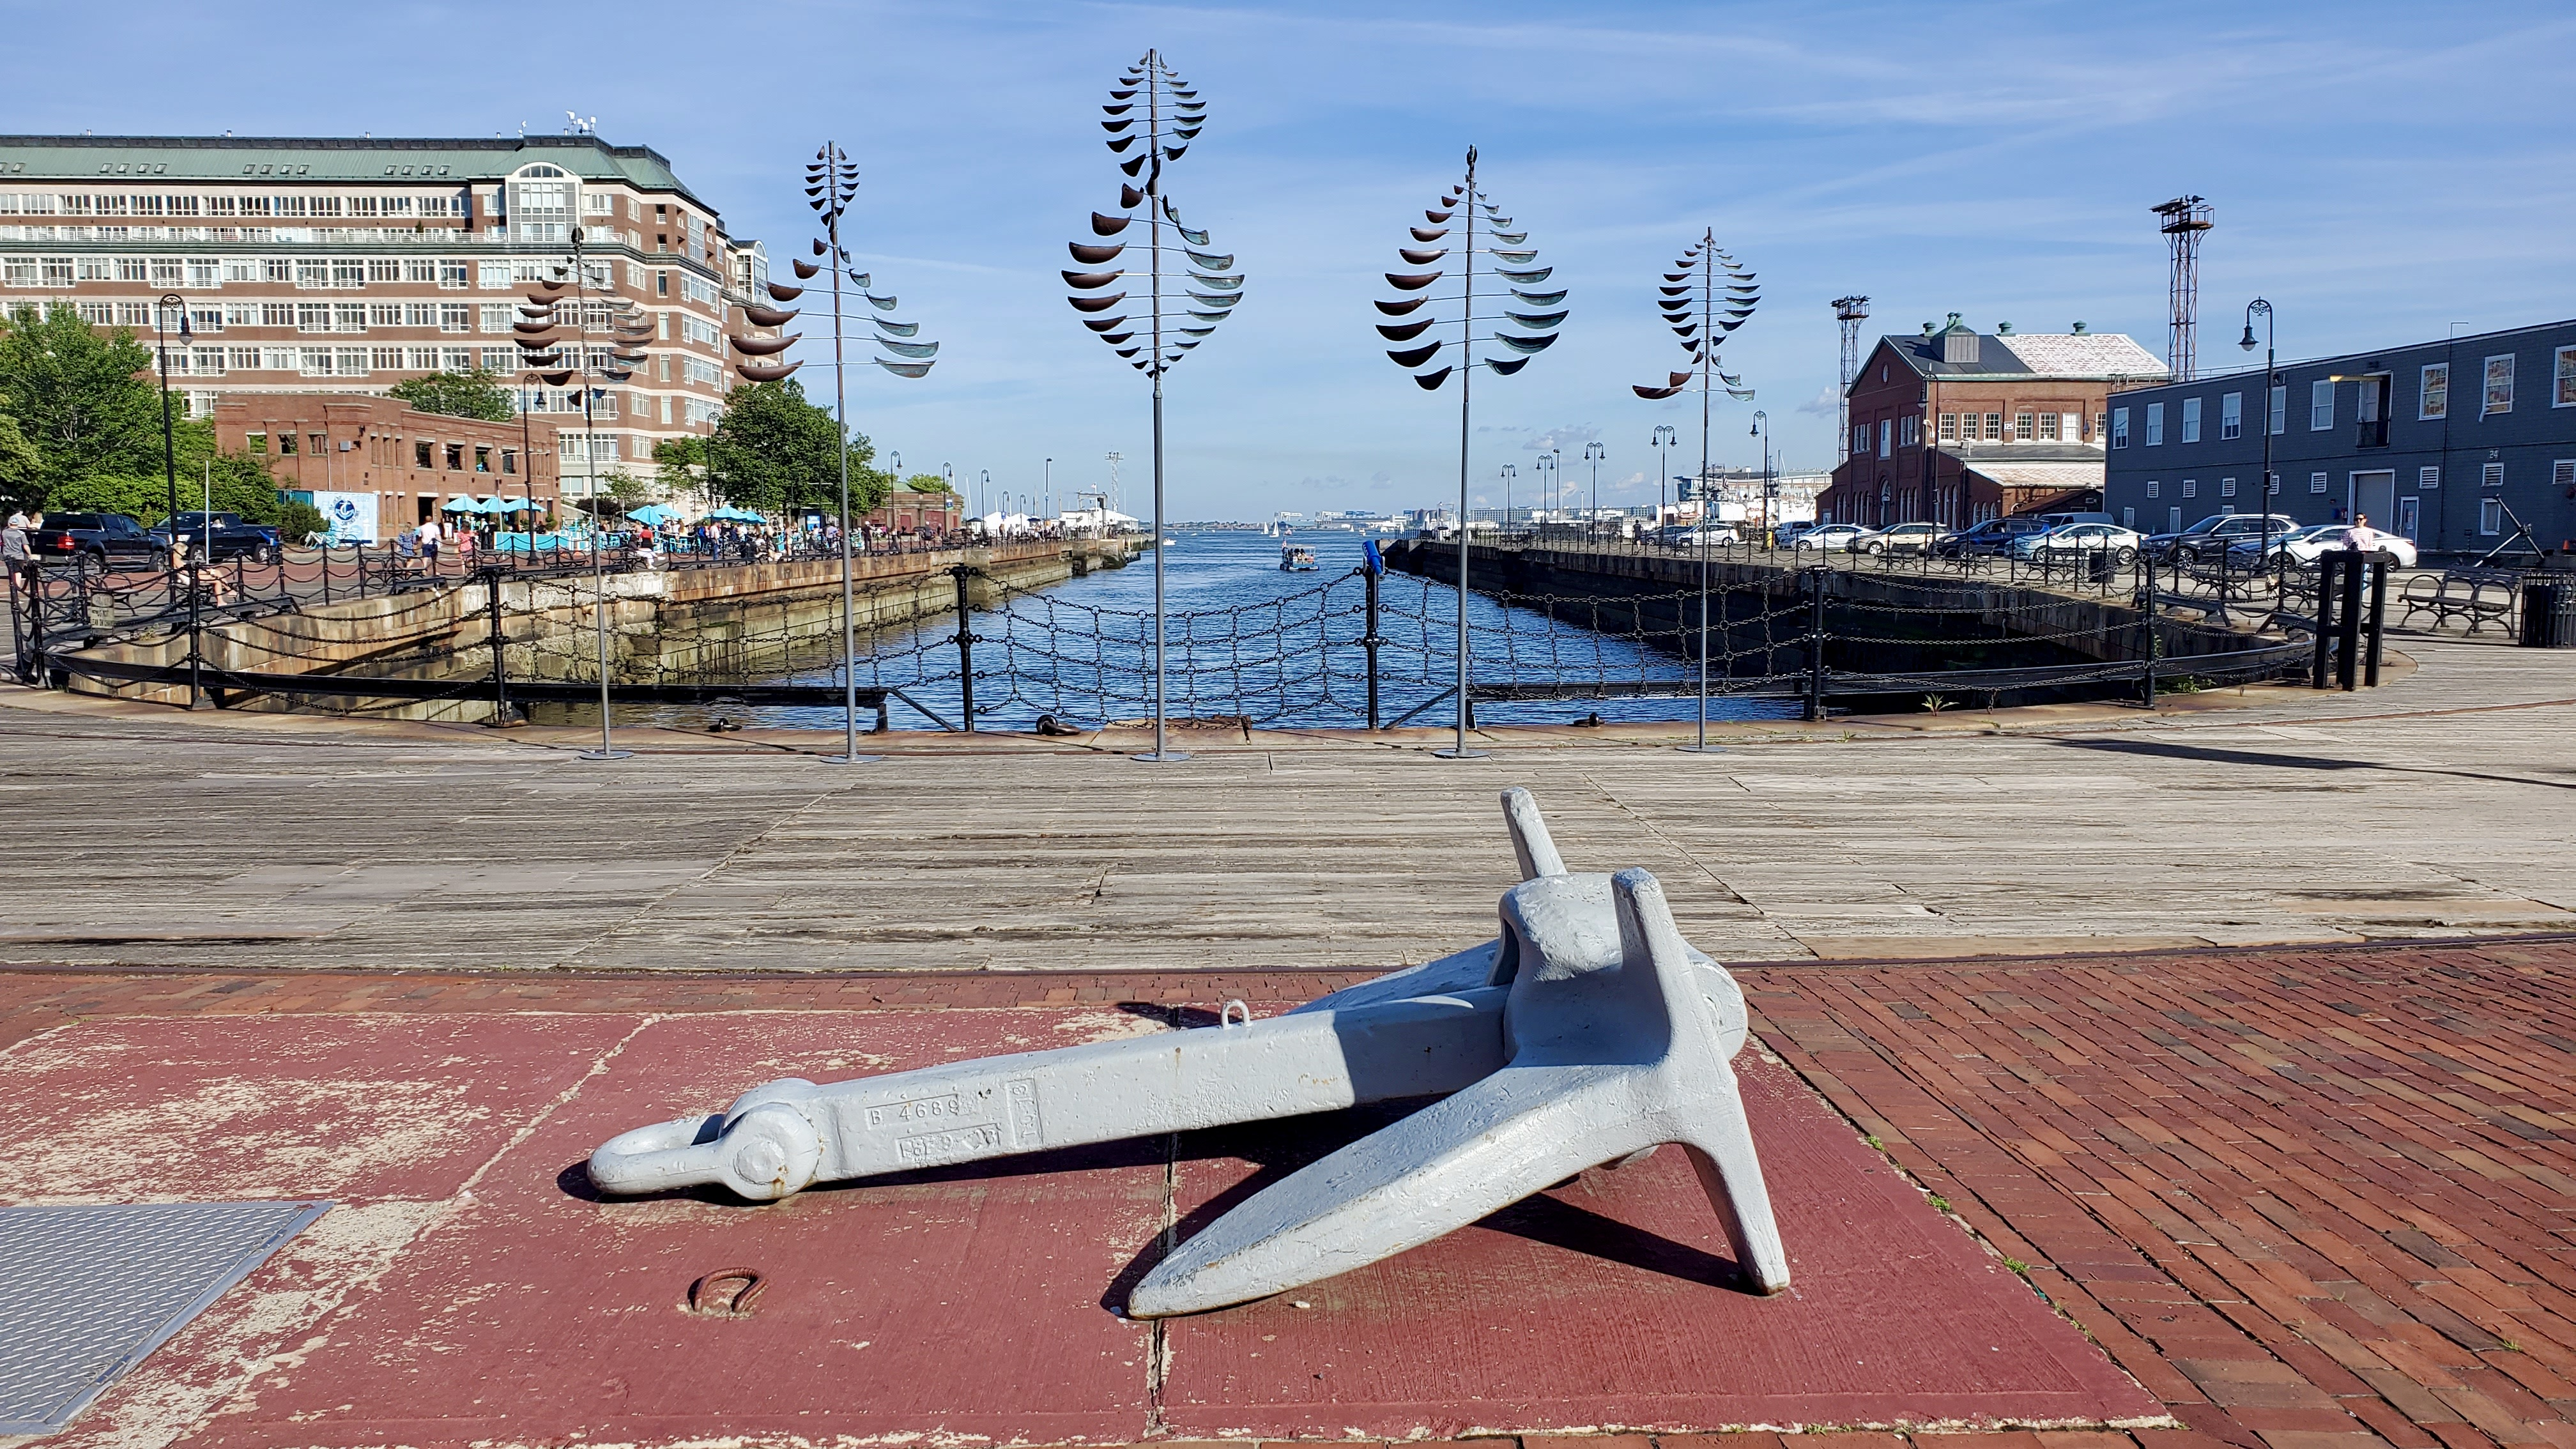 Wind on Water Exhibit at Shipyard Park